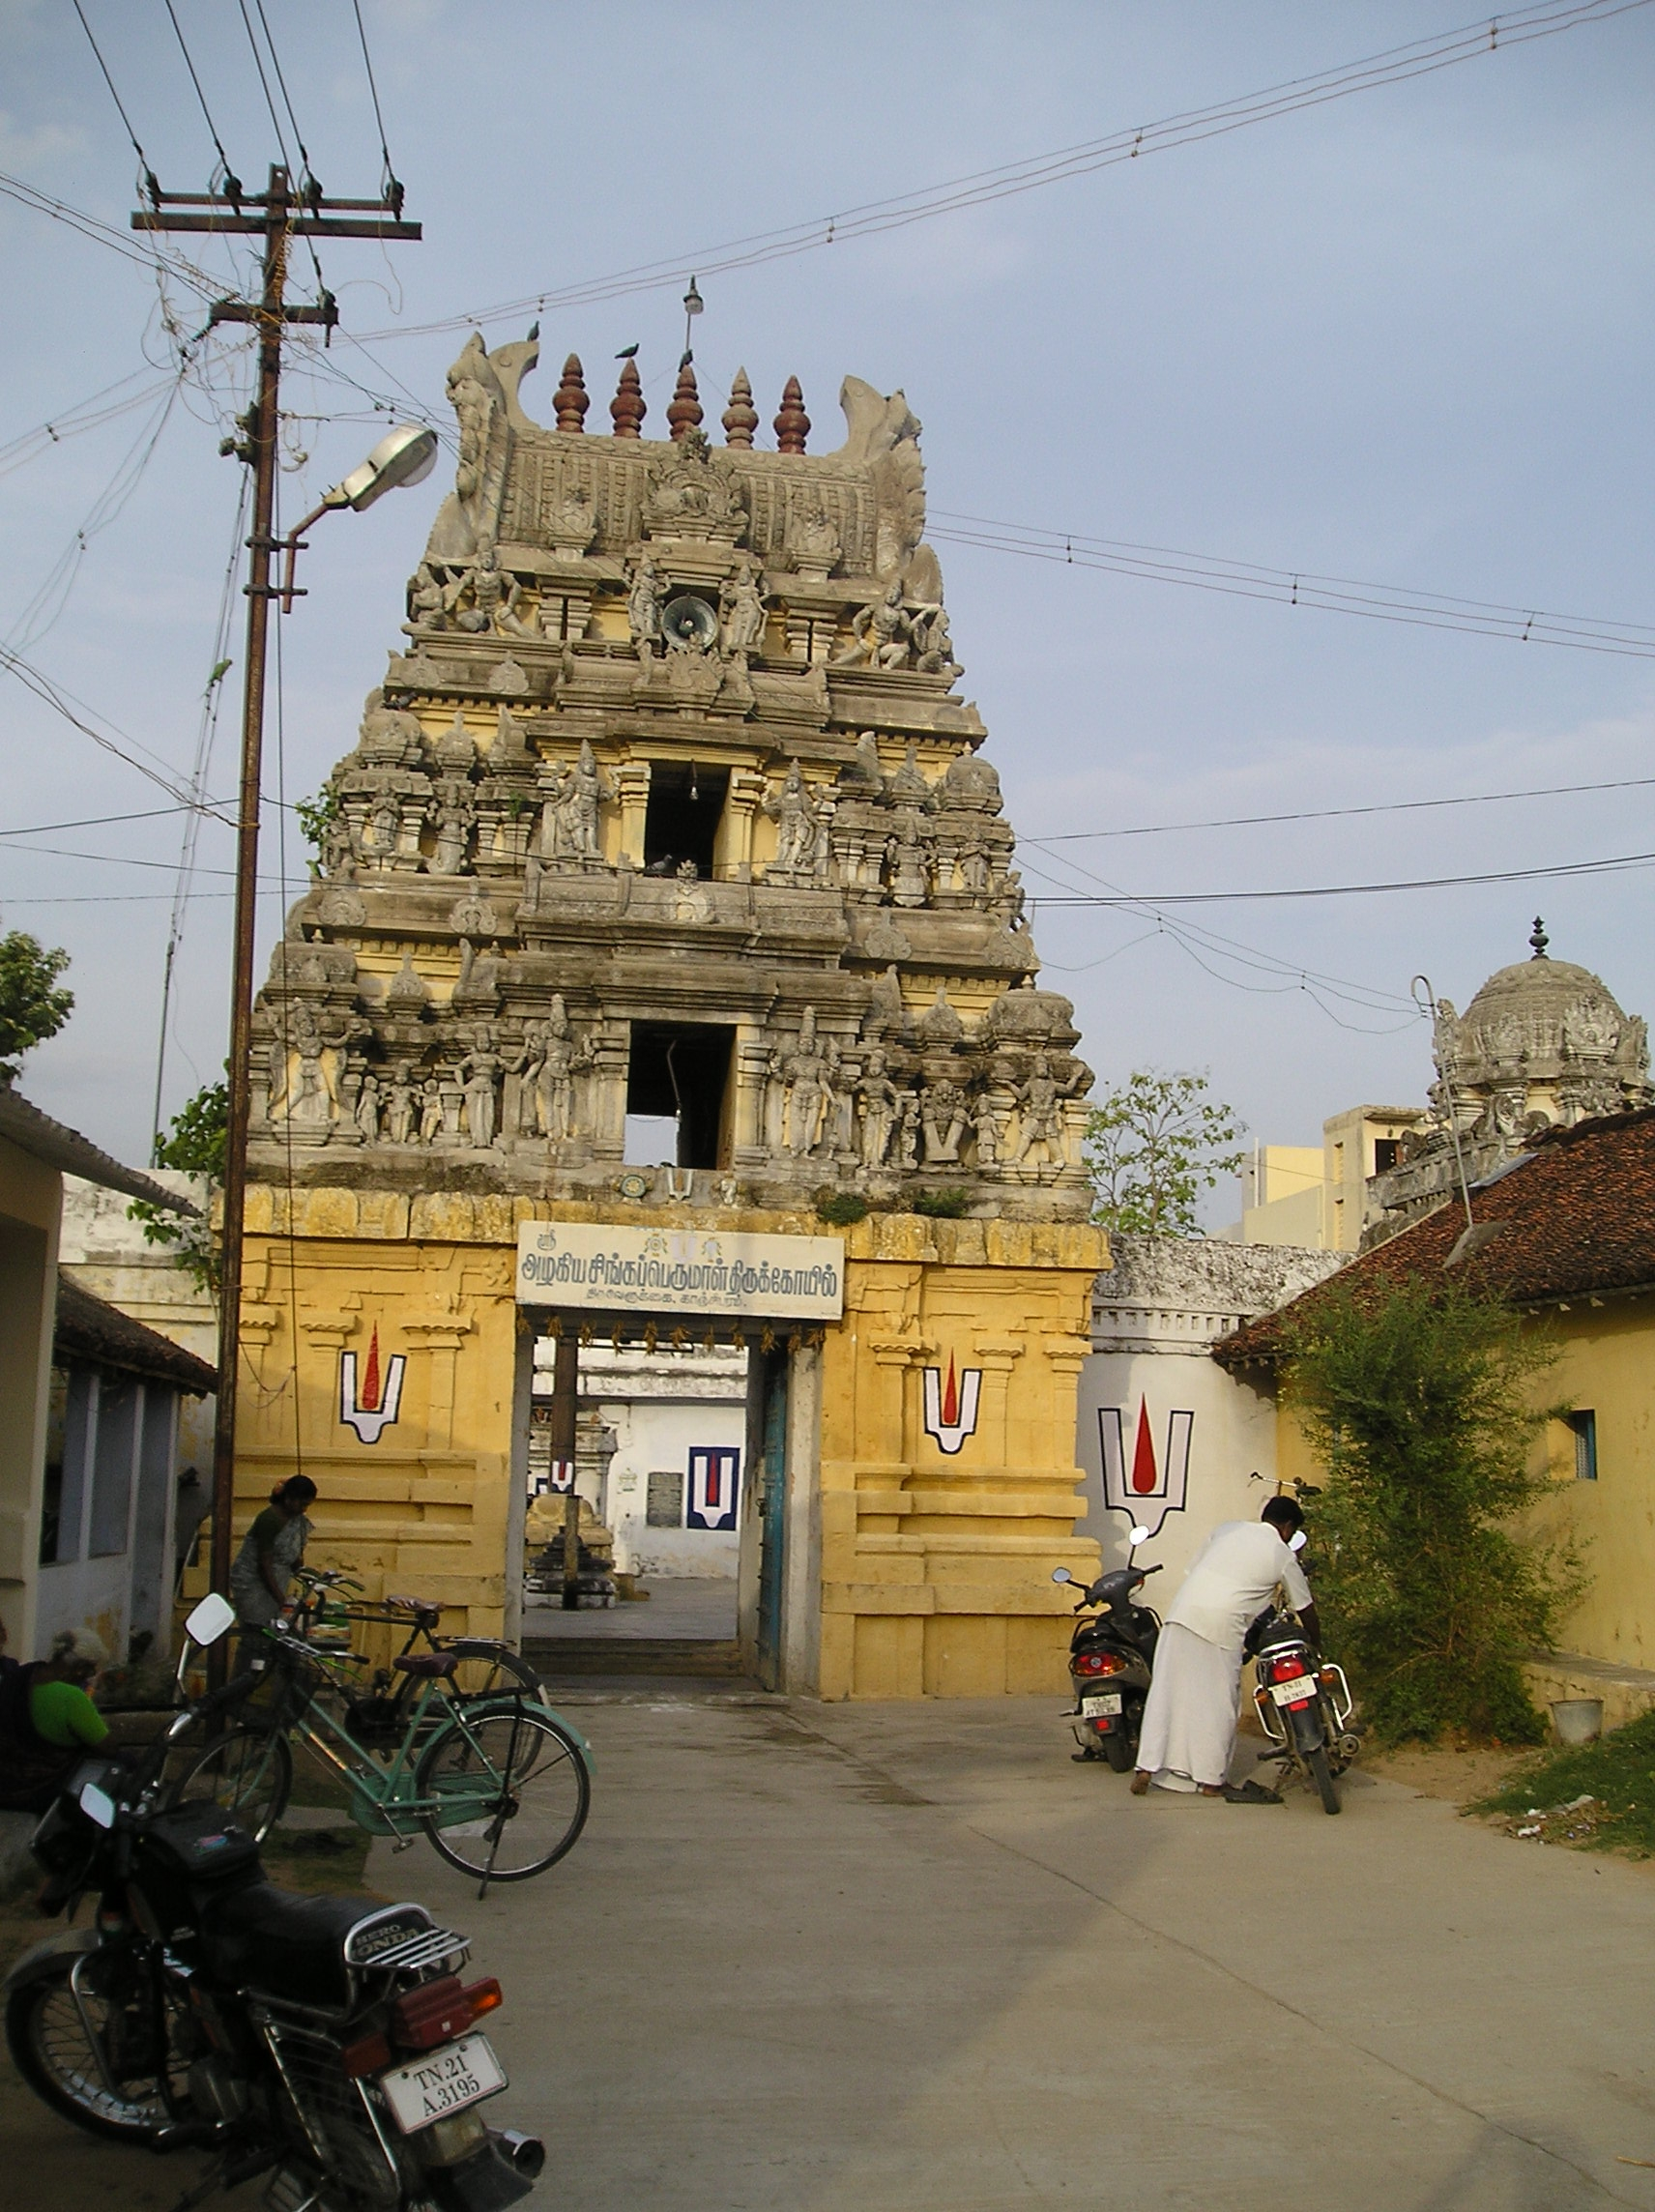 List of temples in KanchipuramOh no, there's been an error